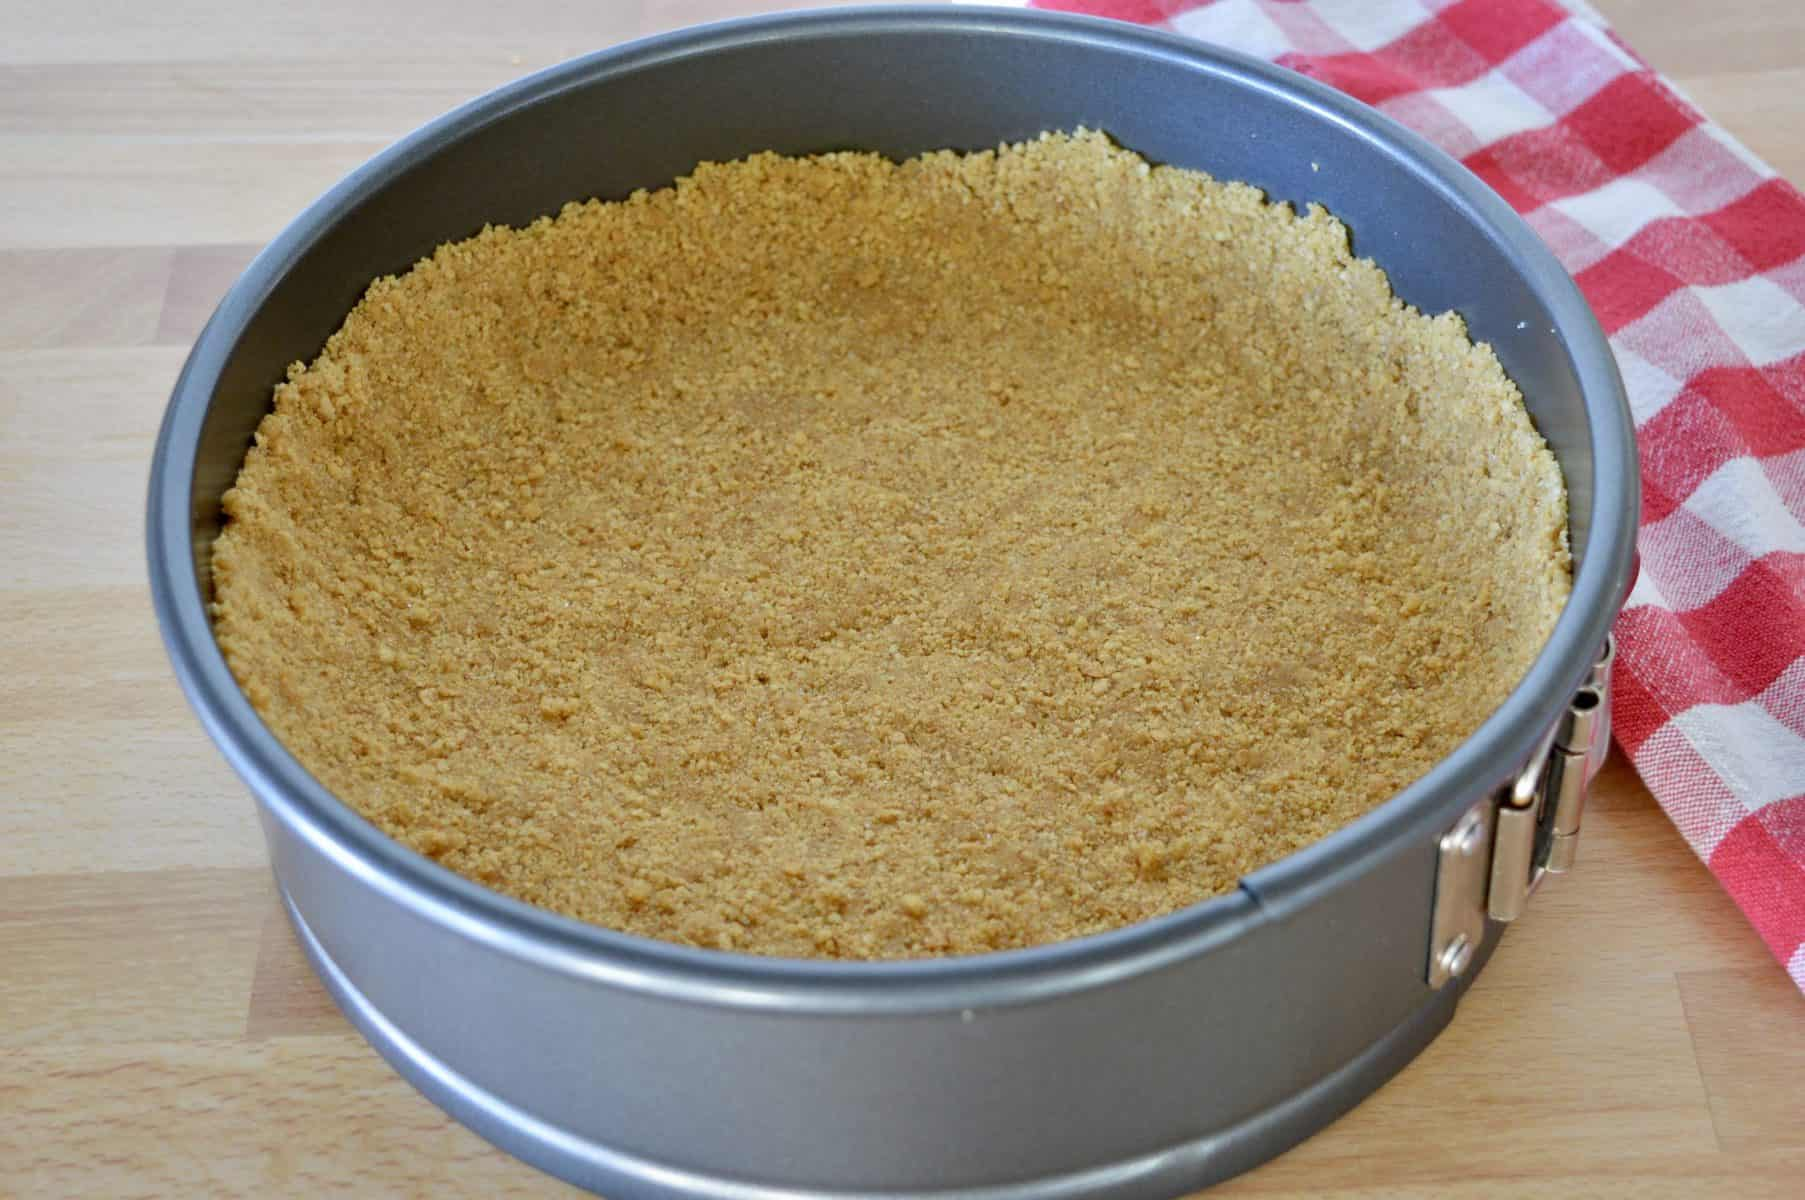 Graham cracker crumbs pressed into the bottom of a springform pan.